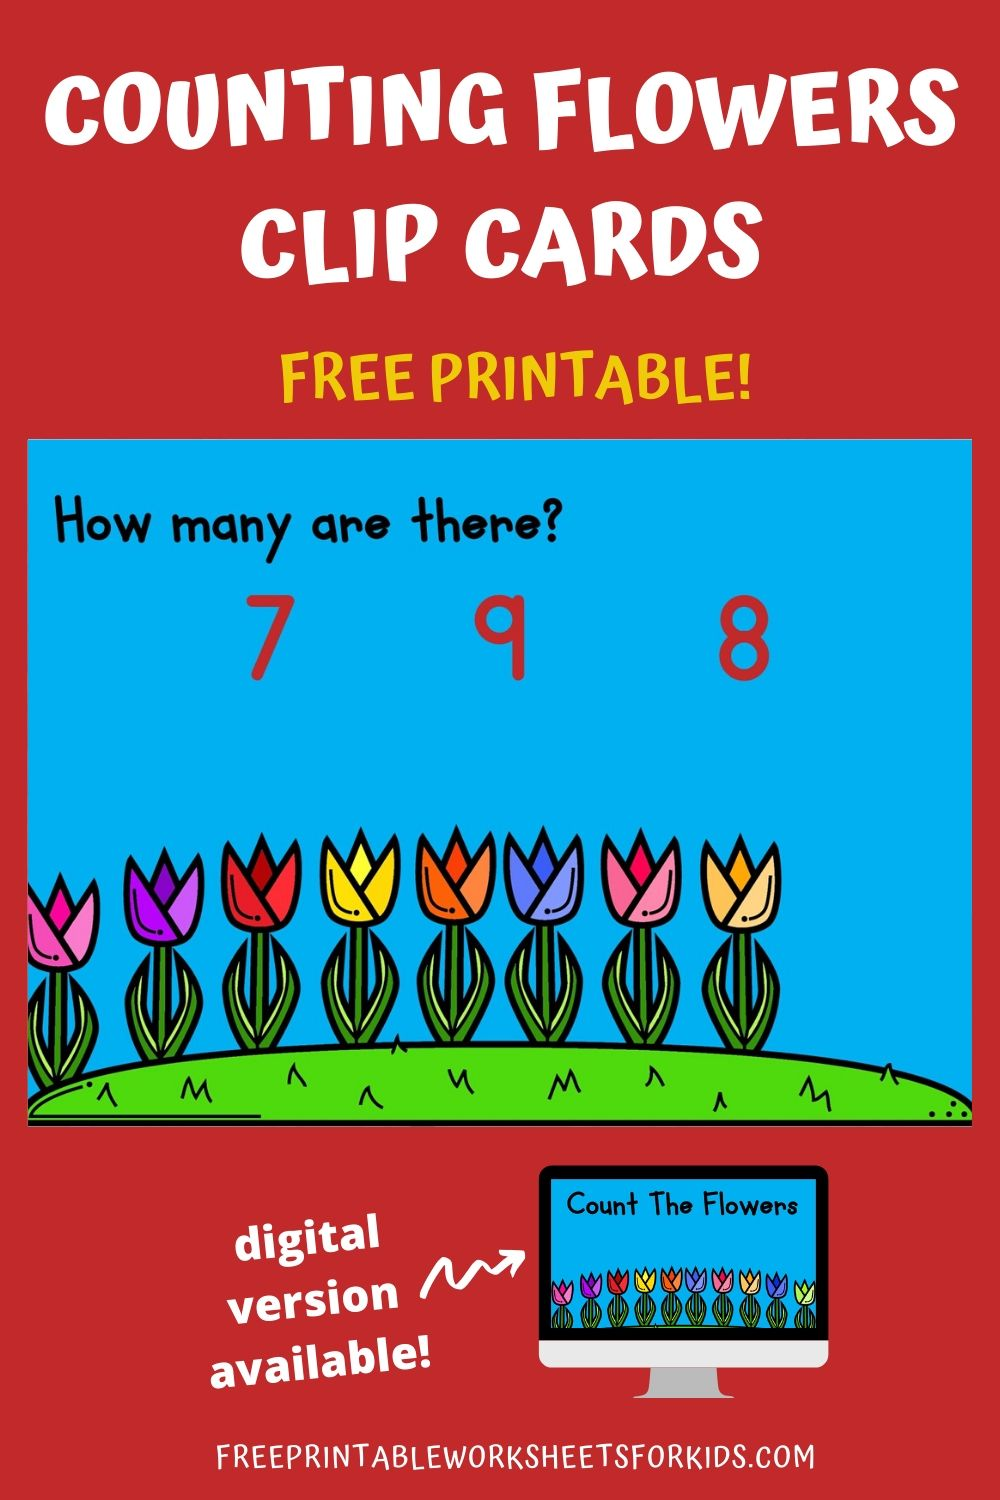 Count The Flowers 1-10 | Free Printable Worksheets For Kids | April showers bring May flowers! This colorful set of clip cards will help your child practice counting from 1-10 while working on developing fine motor strength.